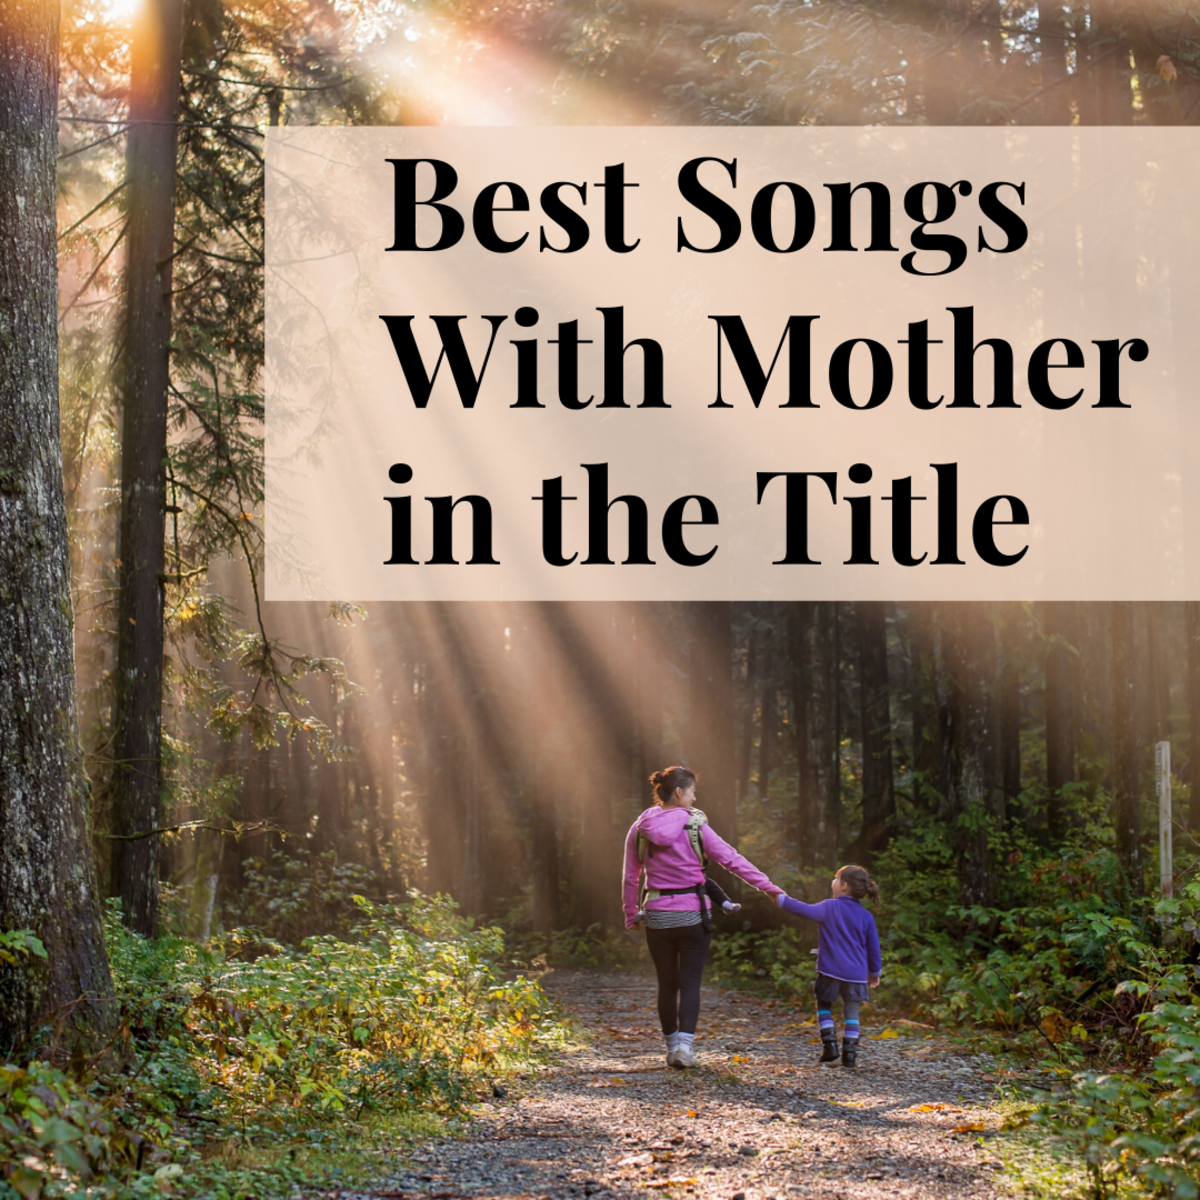 100 Best Songs With the Word Mom in Their Titles